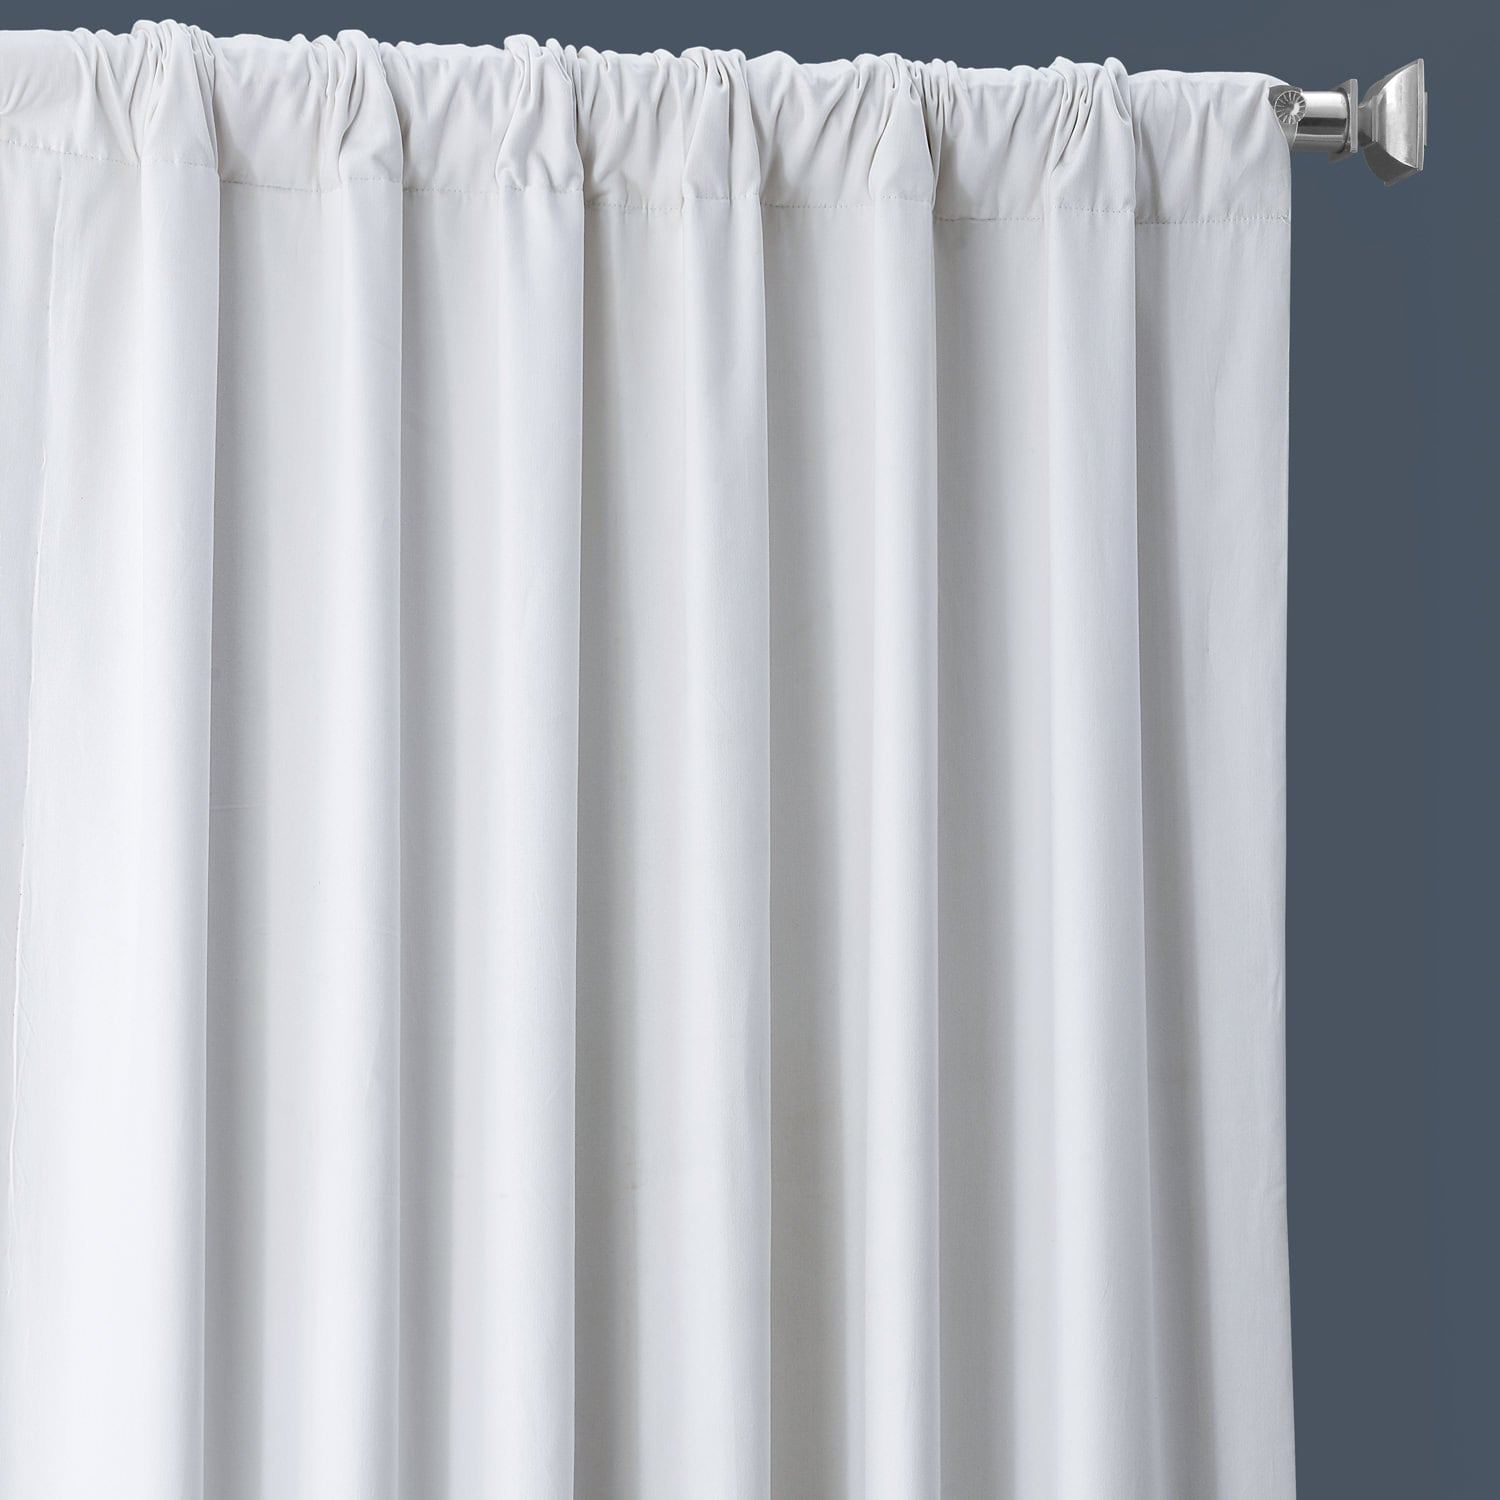 Whisper White Solid Cotton Blackout Curtain